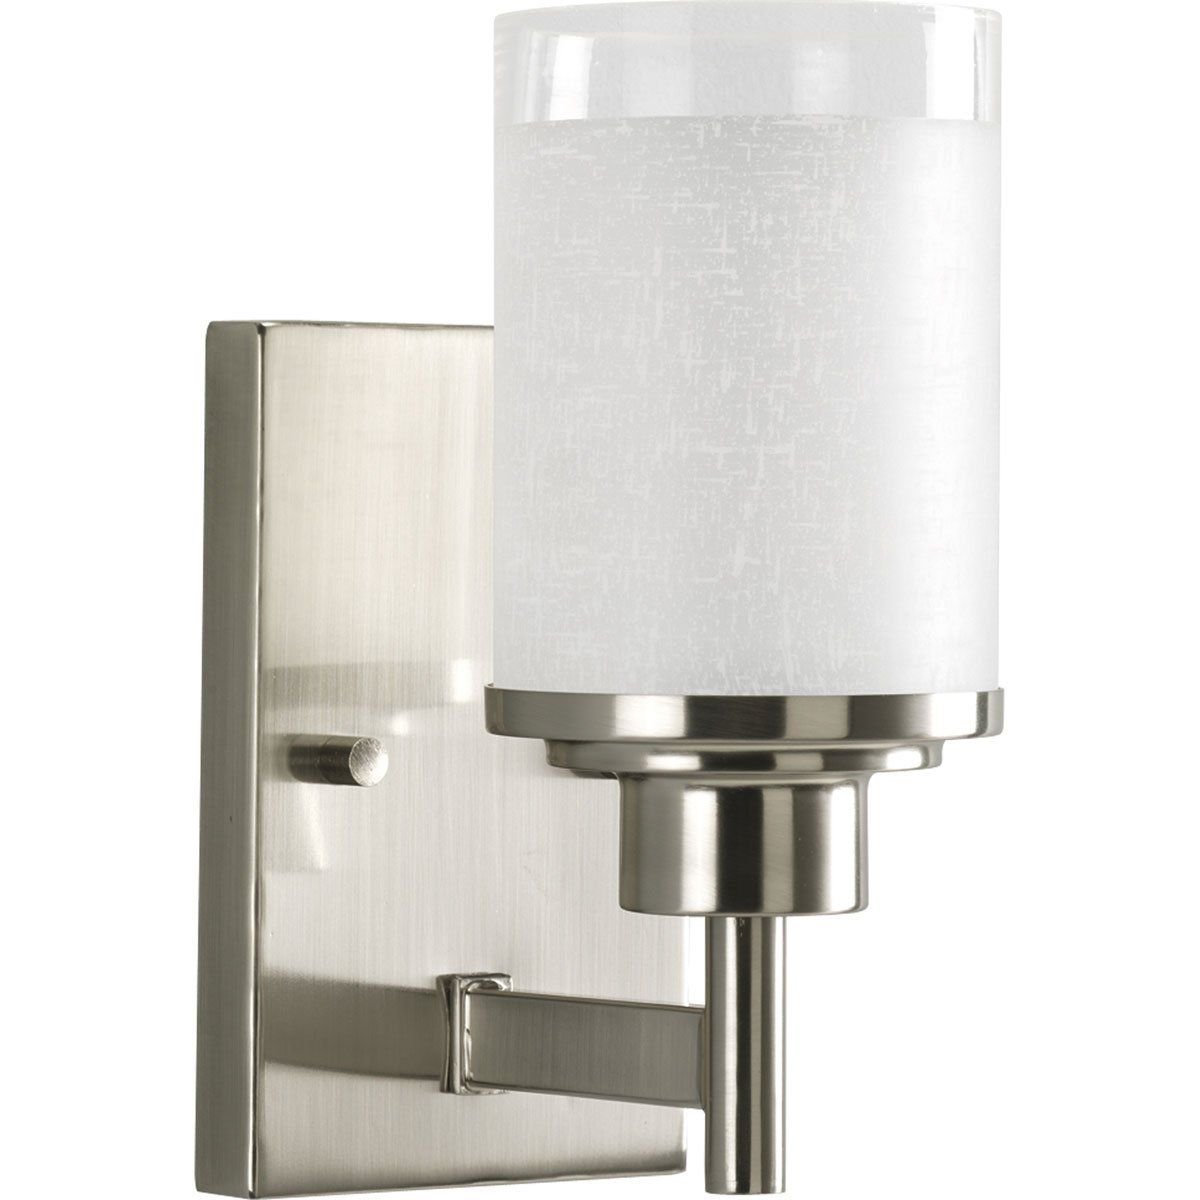 Progress Lighting P2959 09 1 Light Wall Bracket With White Linen Finished Glass And Clear Edge Acc Bathroom Wall Sconces Wall Sconce Lighting Progress Lighting